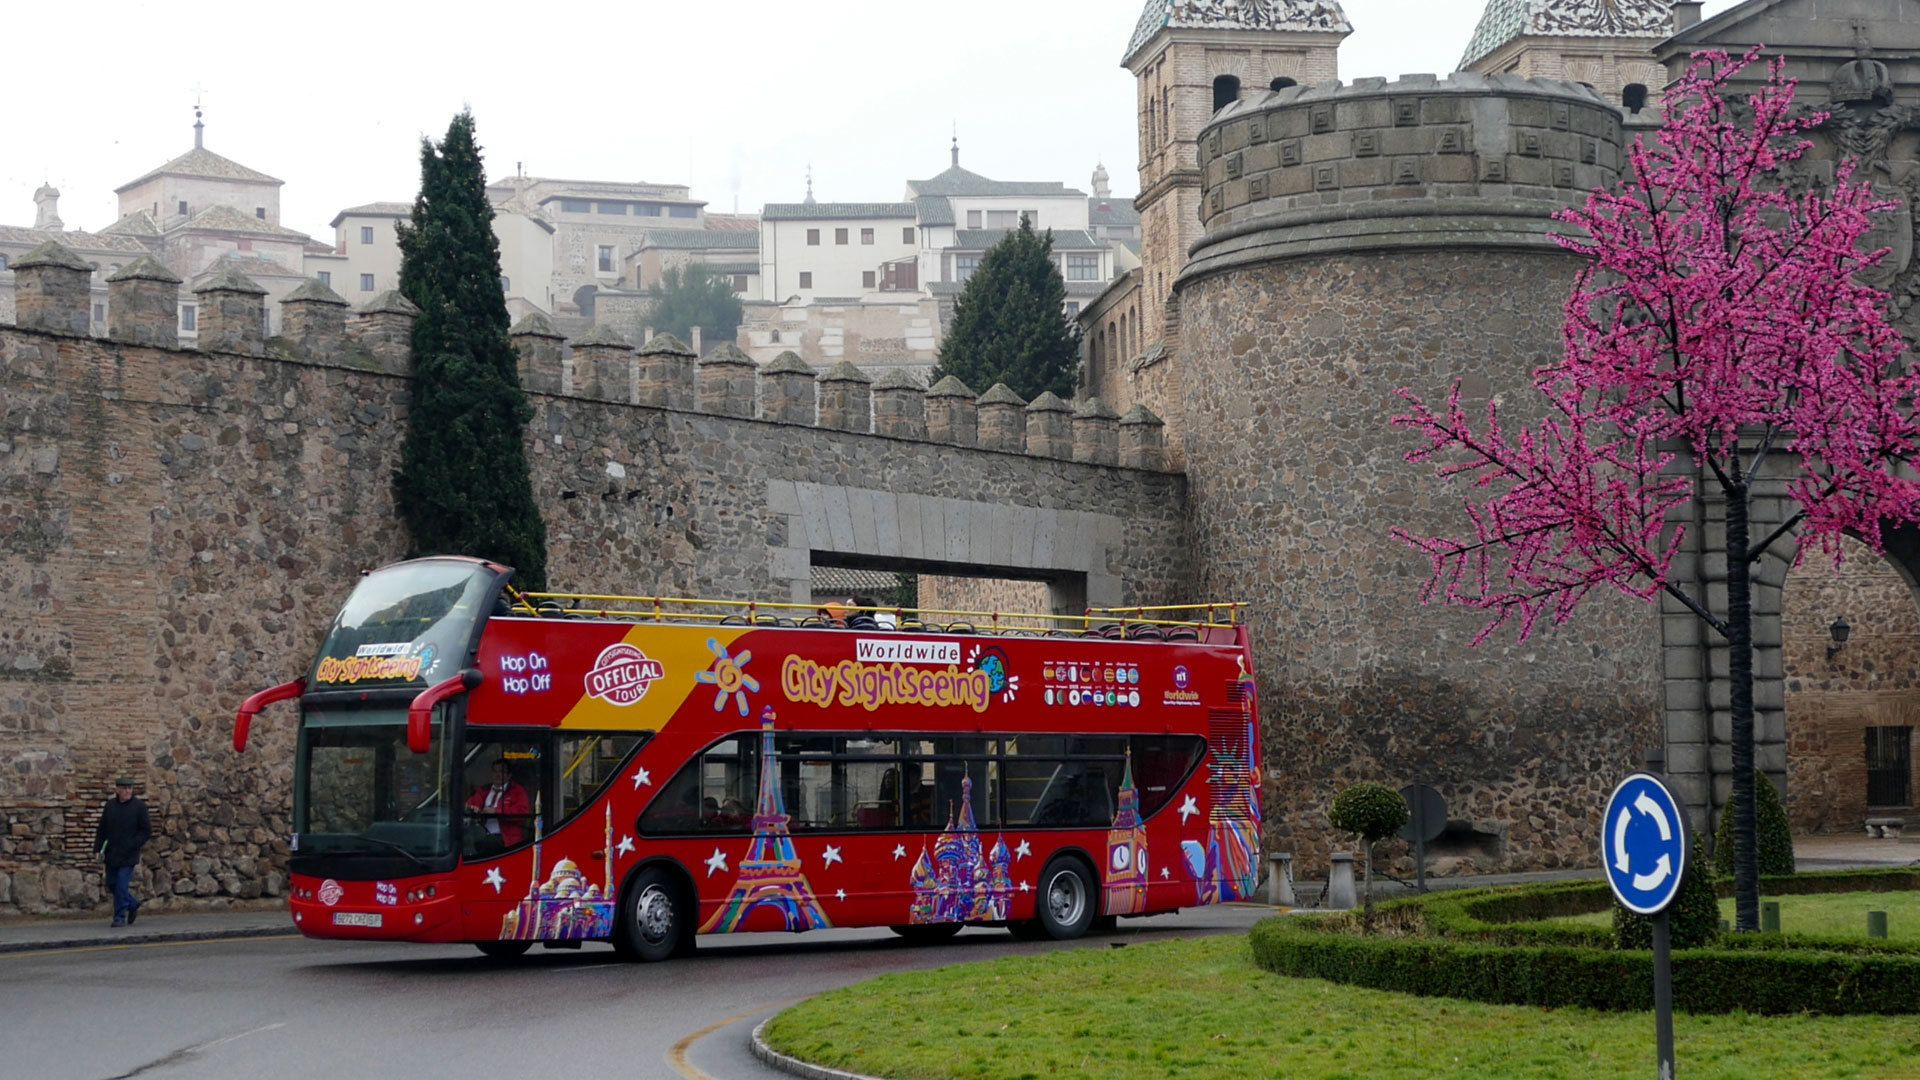 Hop-on hop-off bus in Toledo